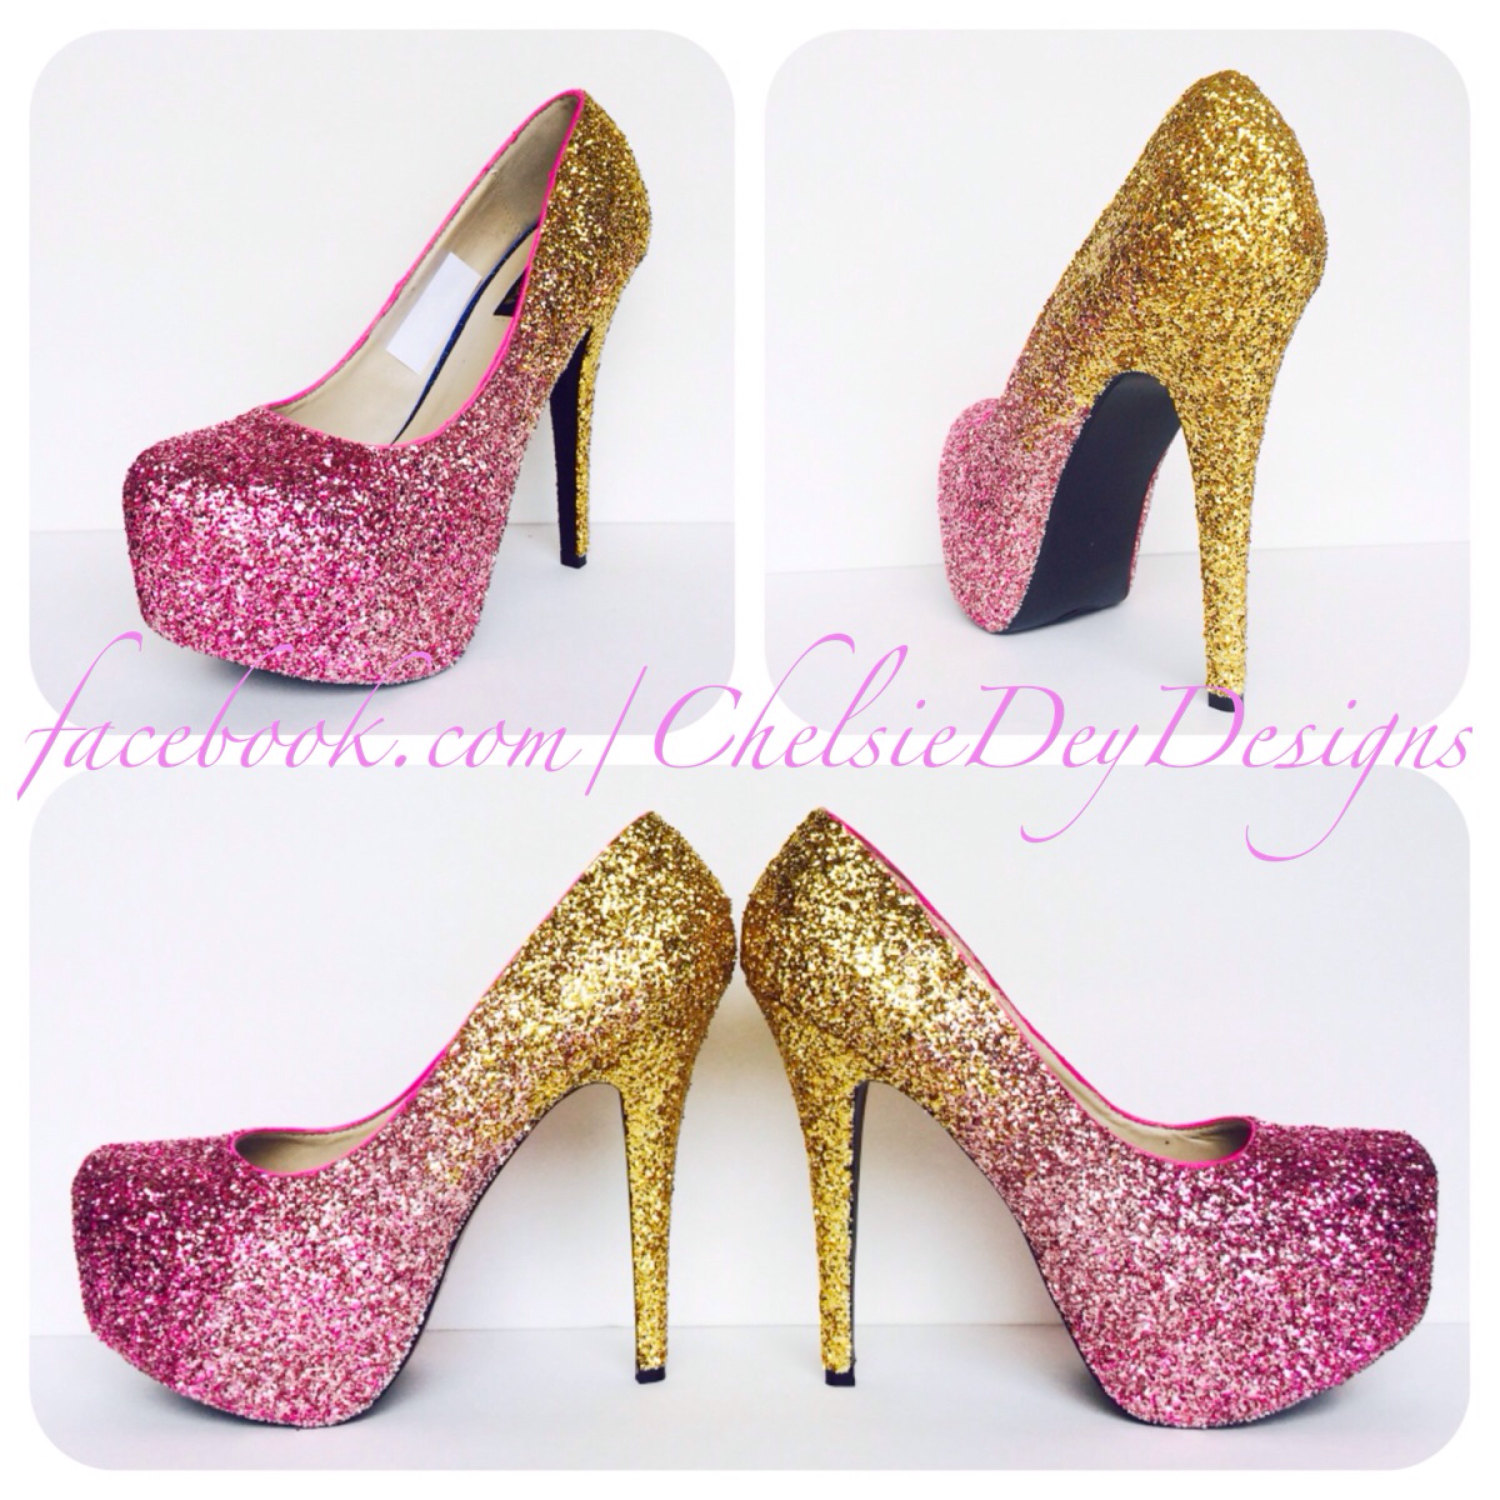 Hot Pink Glitter High Heels, Gold Ombre Platform Pumps, Sparkly ...